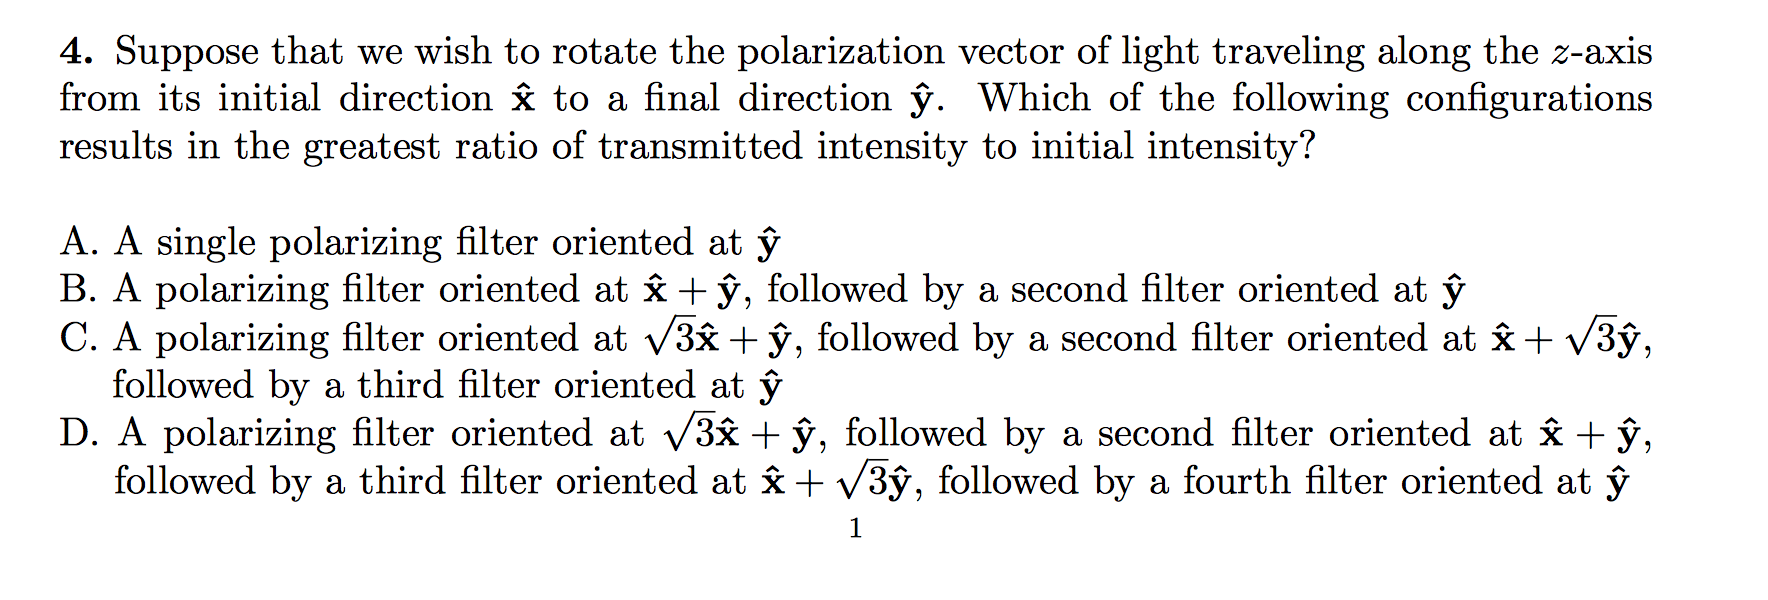 Can someone explain this question too me?